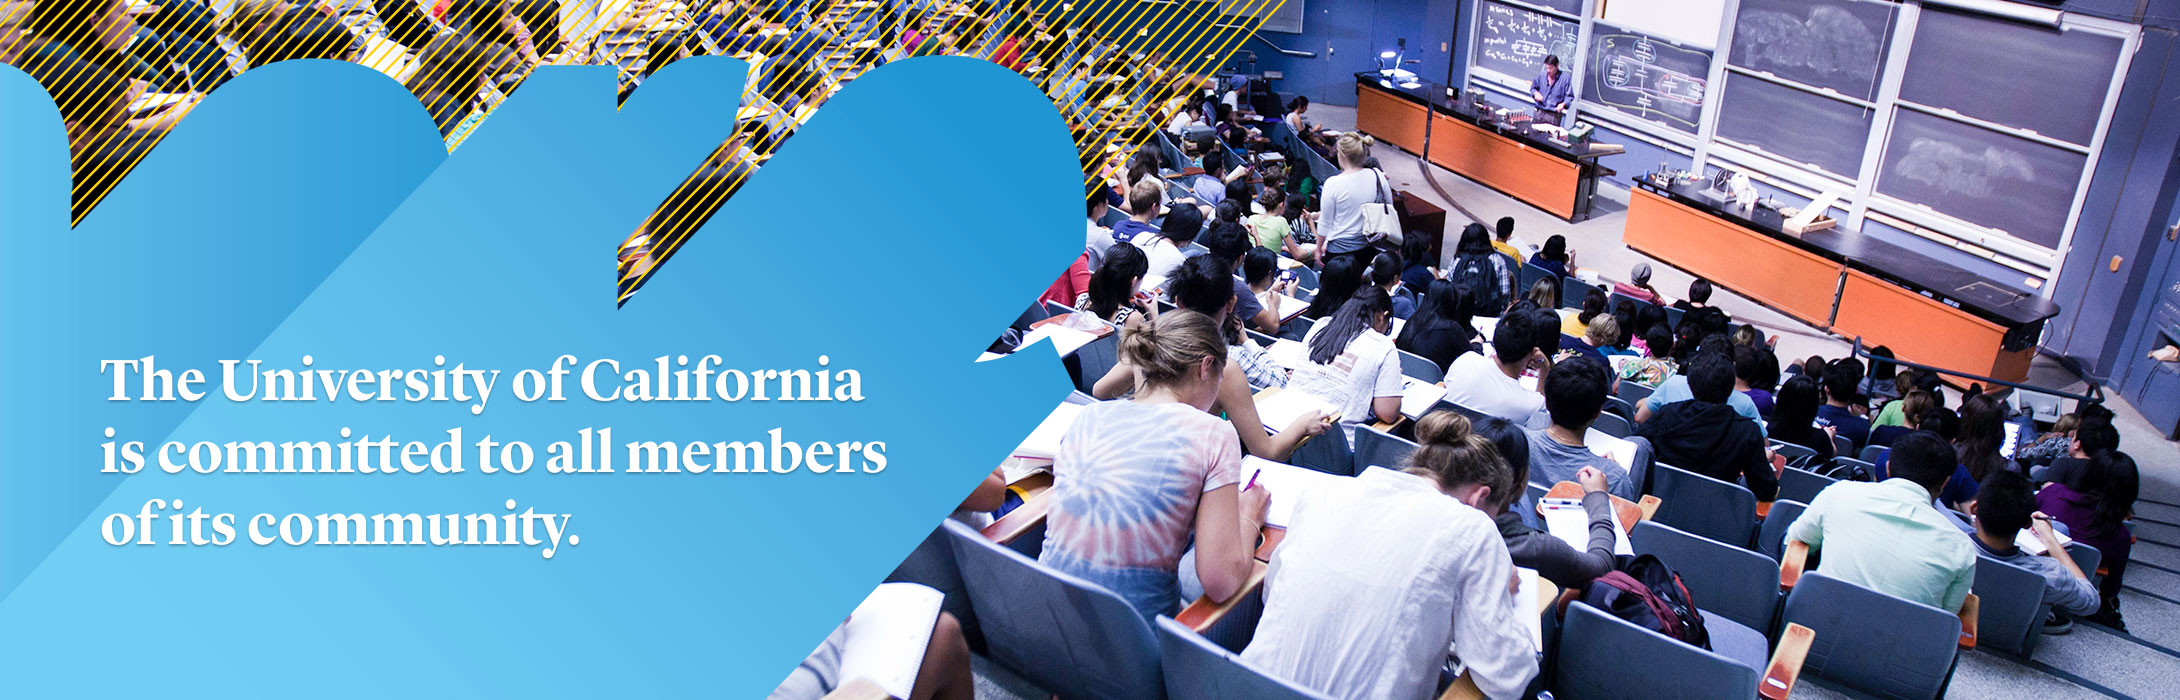 The University of California is committed to all members of its community. Click here for the UC systemwide website with up-to-date information and statements regarding the executive order as well as links to resources, including for undocumented students.